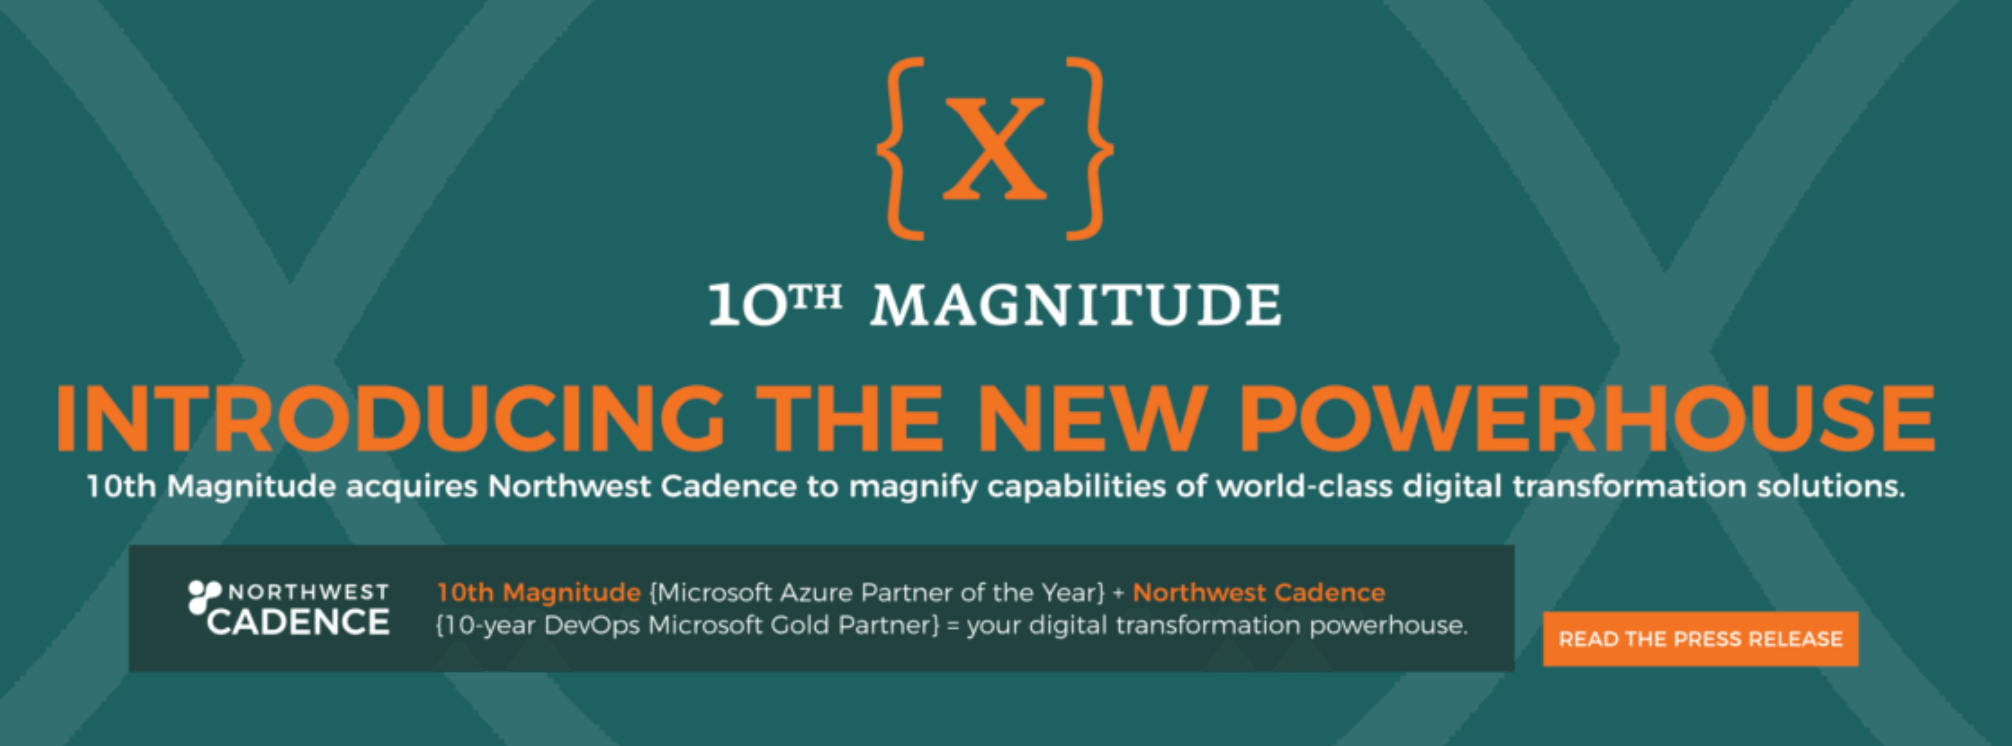 Technical agility 10th Magnitude acquires Northwest Cadence